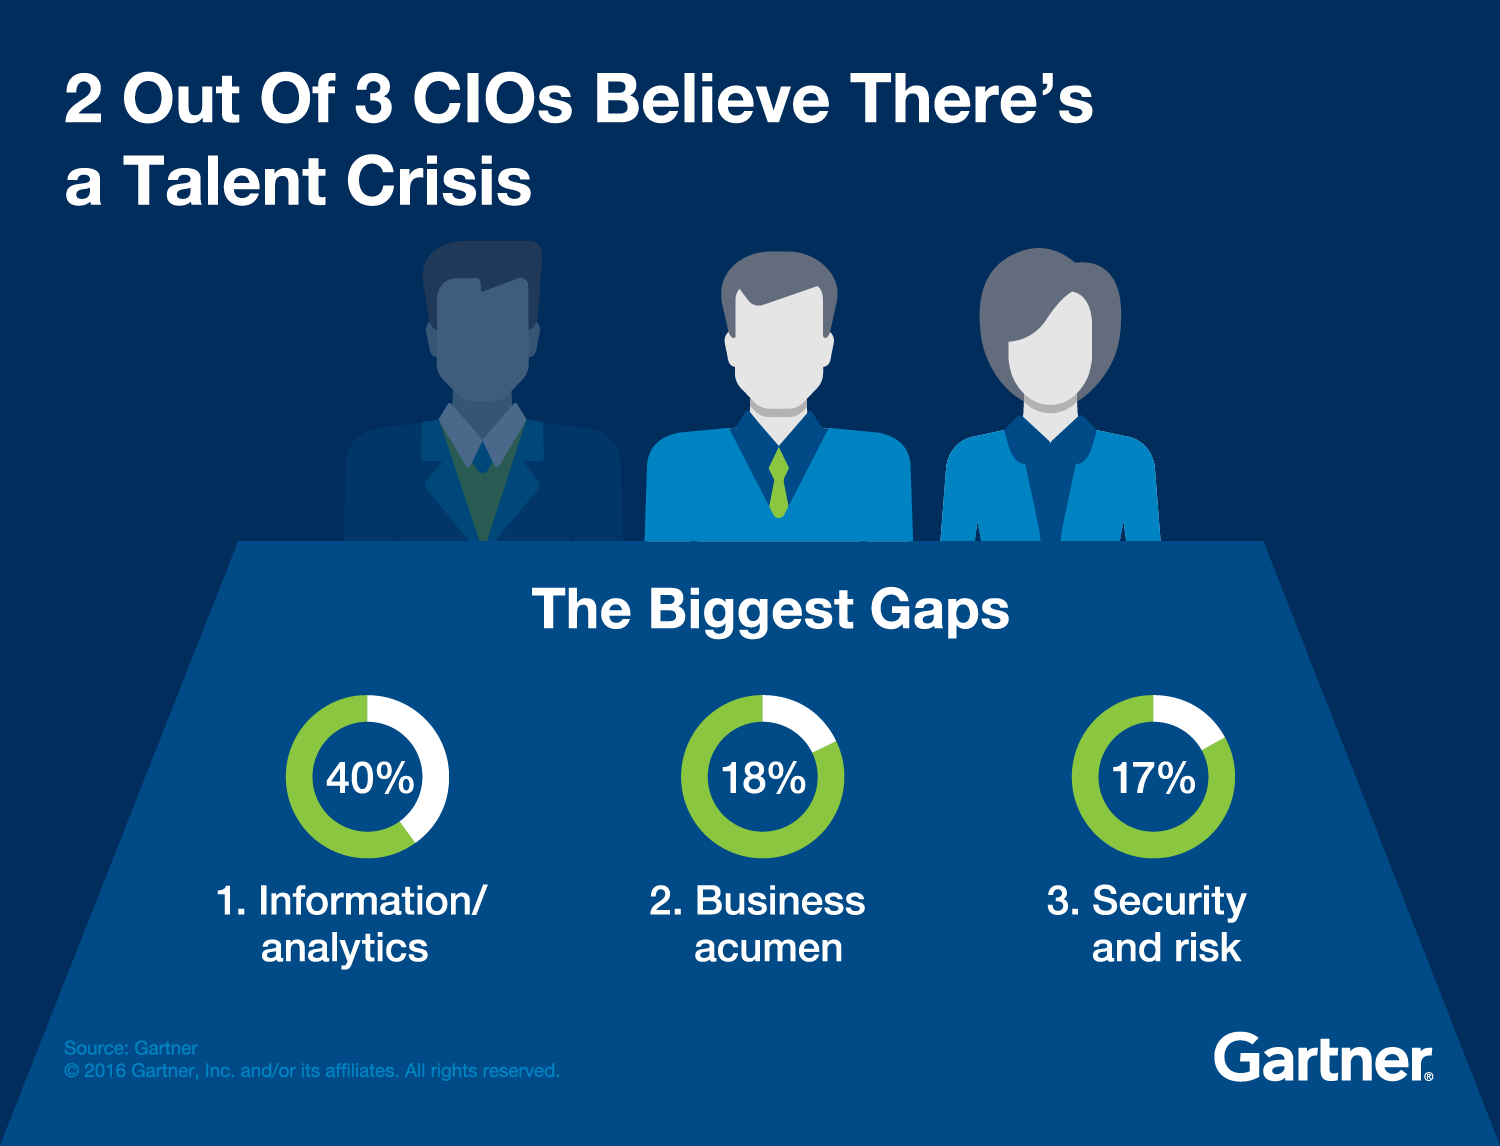 Talent Crisis Gartner Research